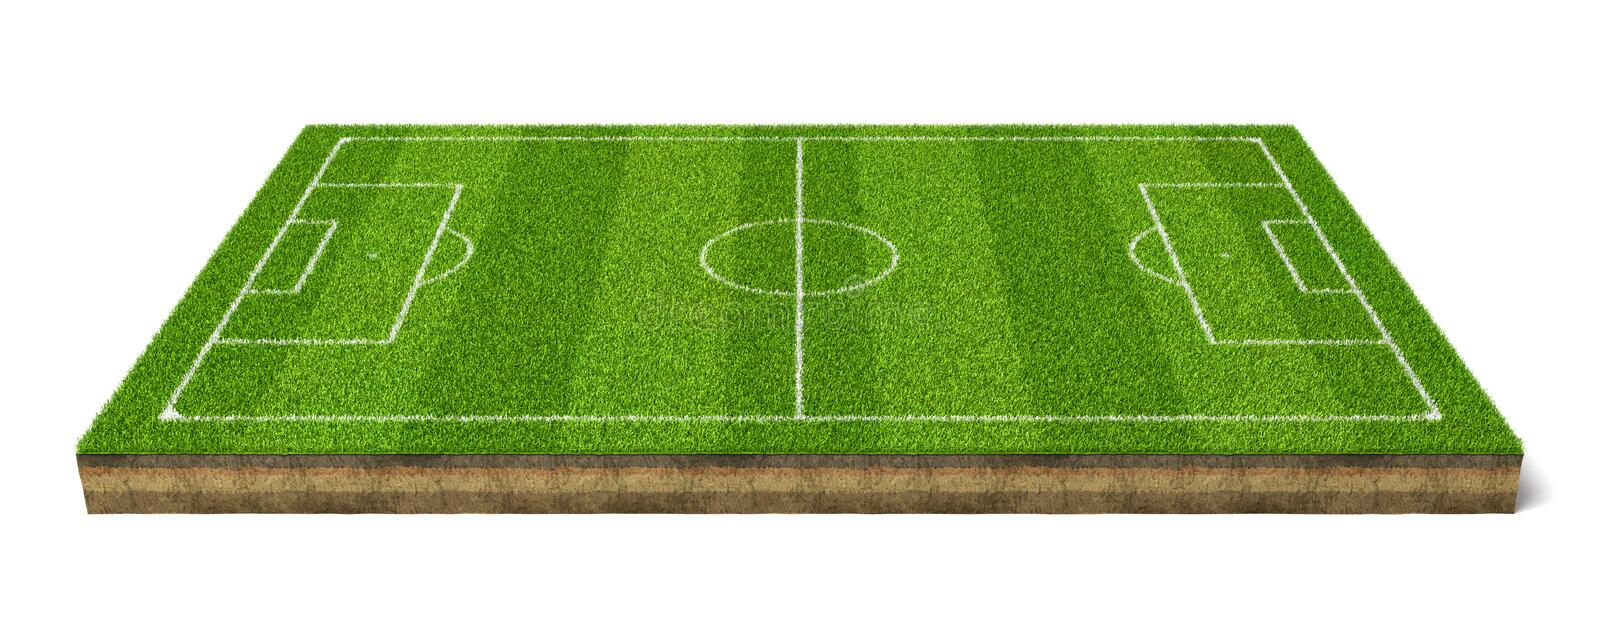 3d rendering of a grass sport field with white lines marking the game positions. royalty free illustration